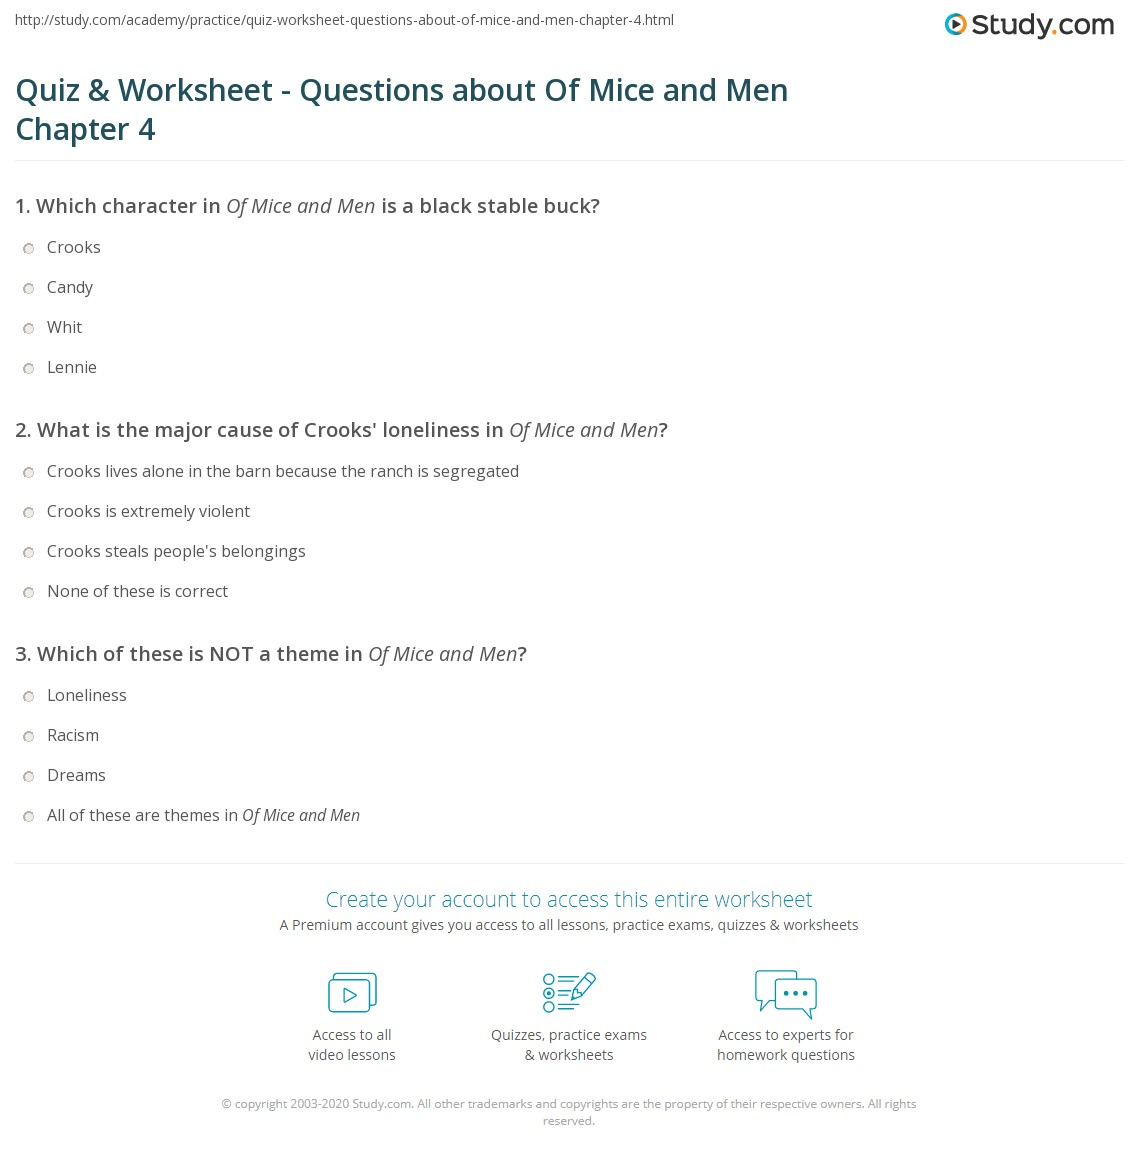 of mice and men book review essay characters as archetypes in of  quiz worksheet questions about of mice and men chapter print of mice and men chapter 4